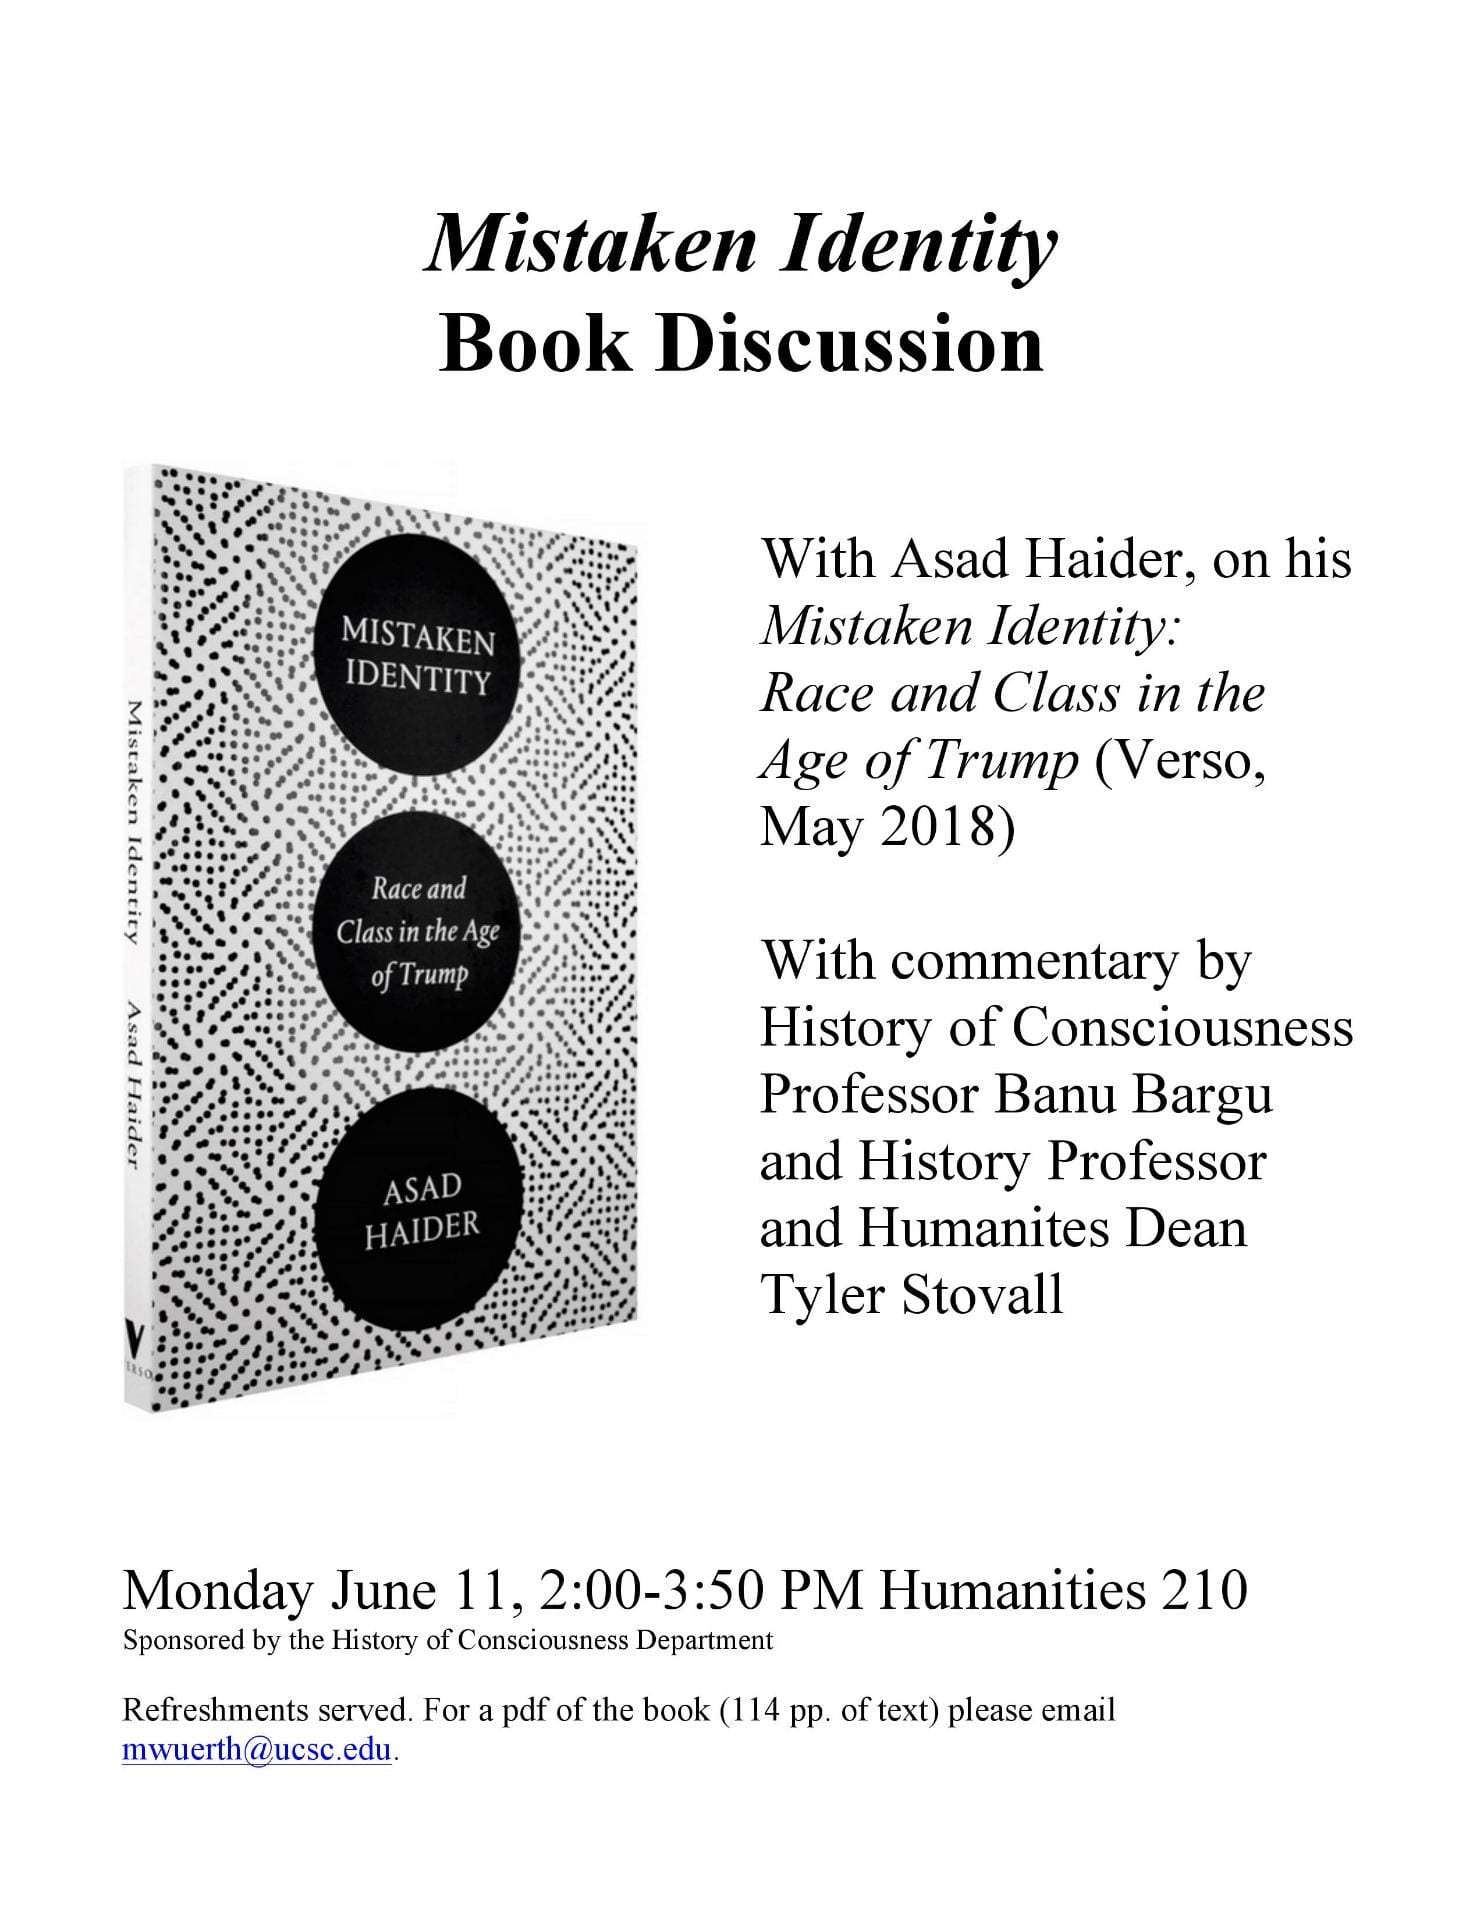 A flyer showing Haider's book and text is shown